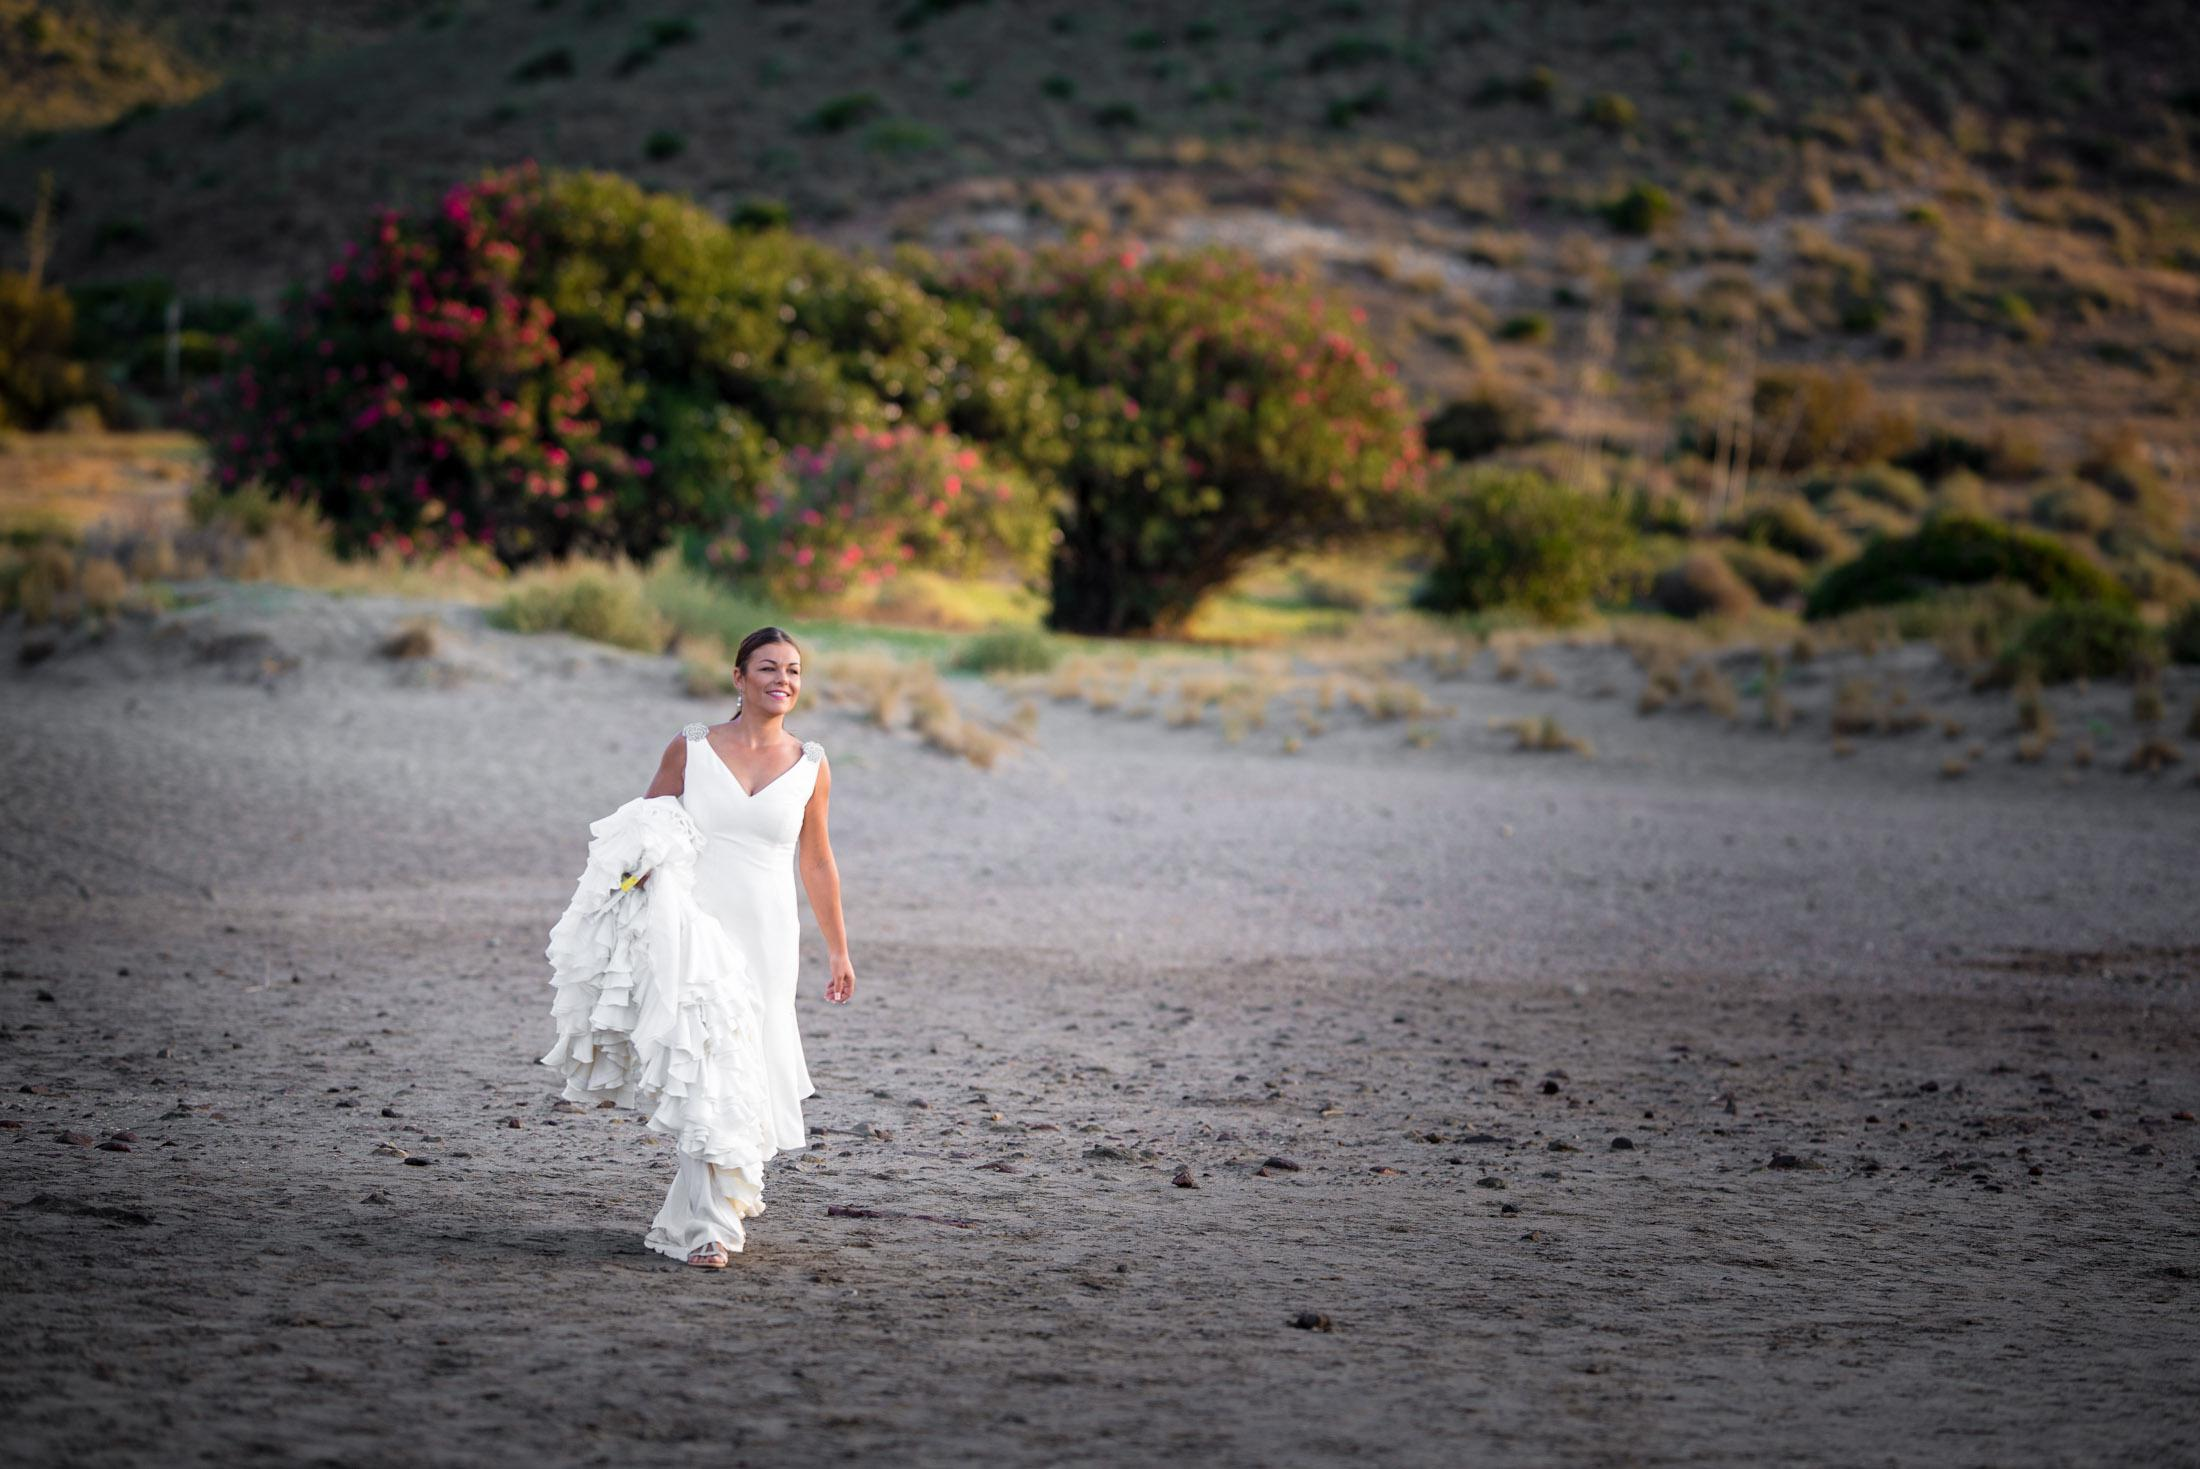 ost Boda en la playa de Monsul 02